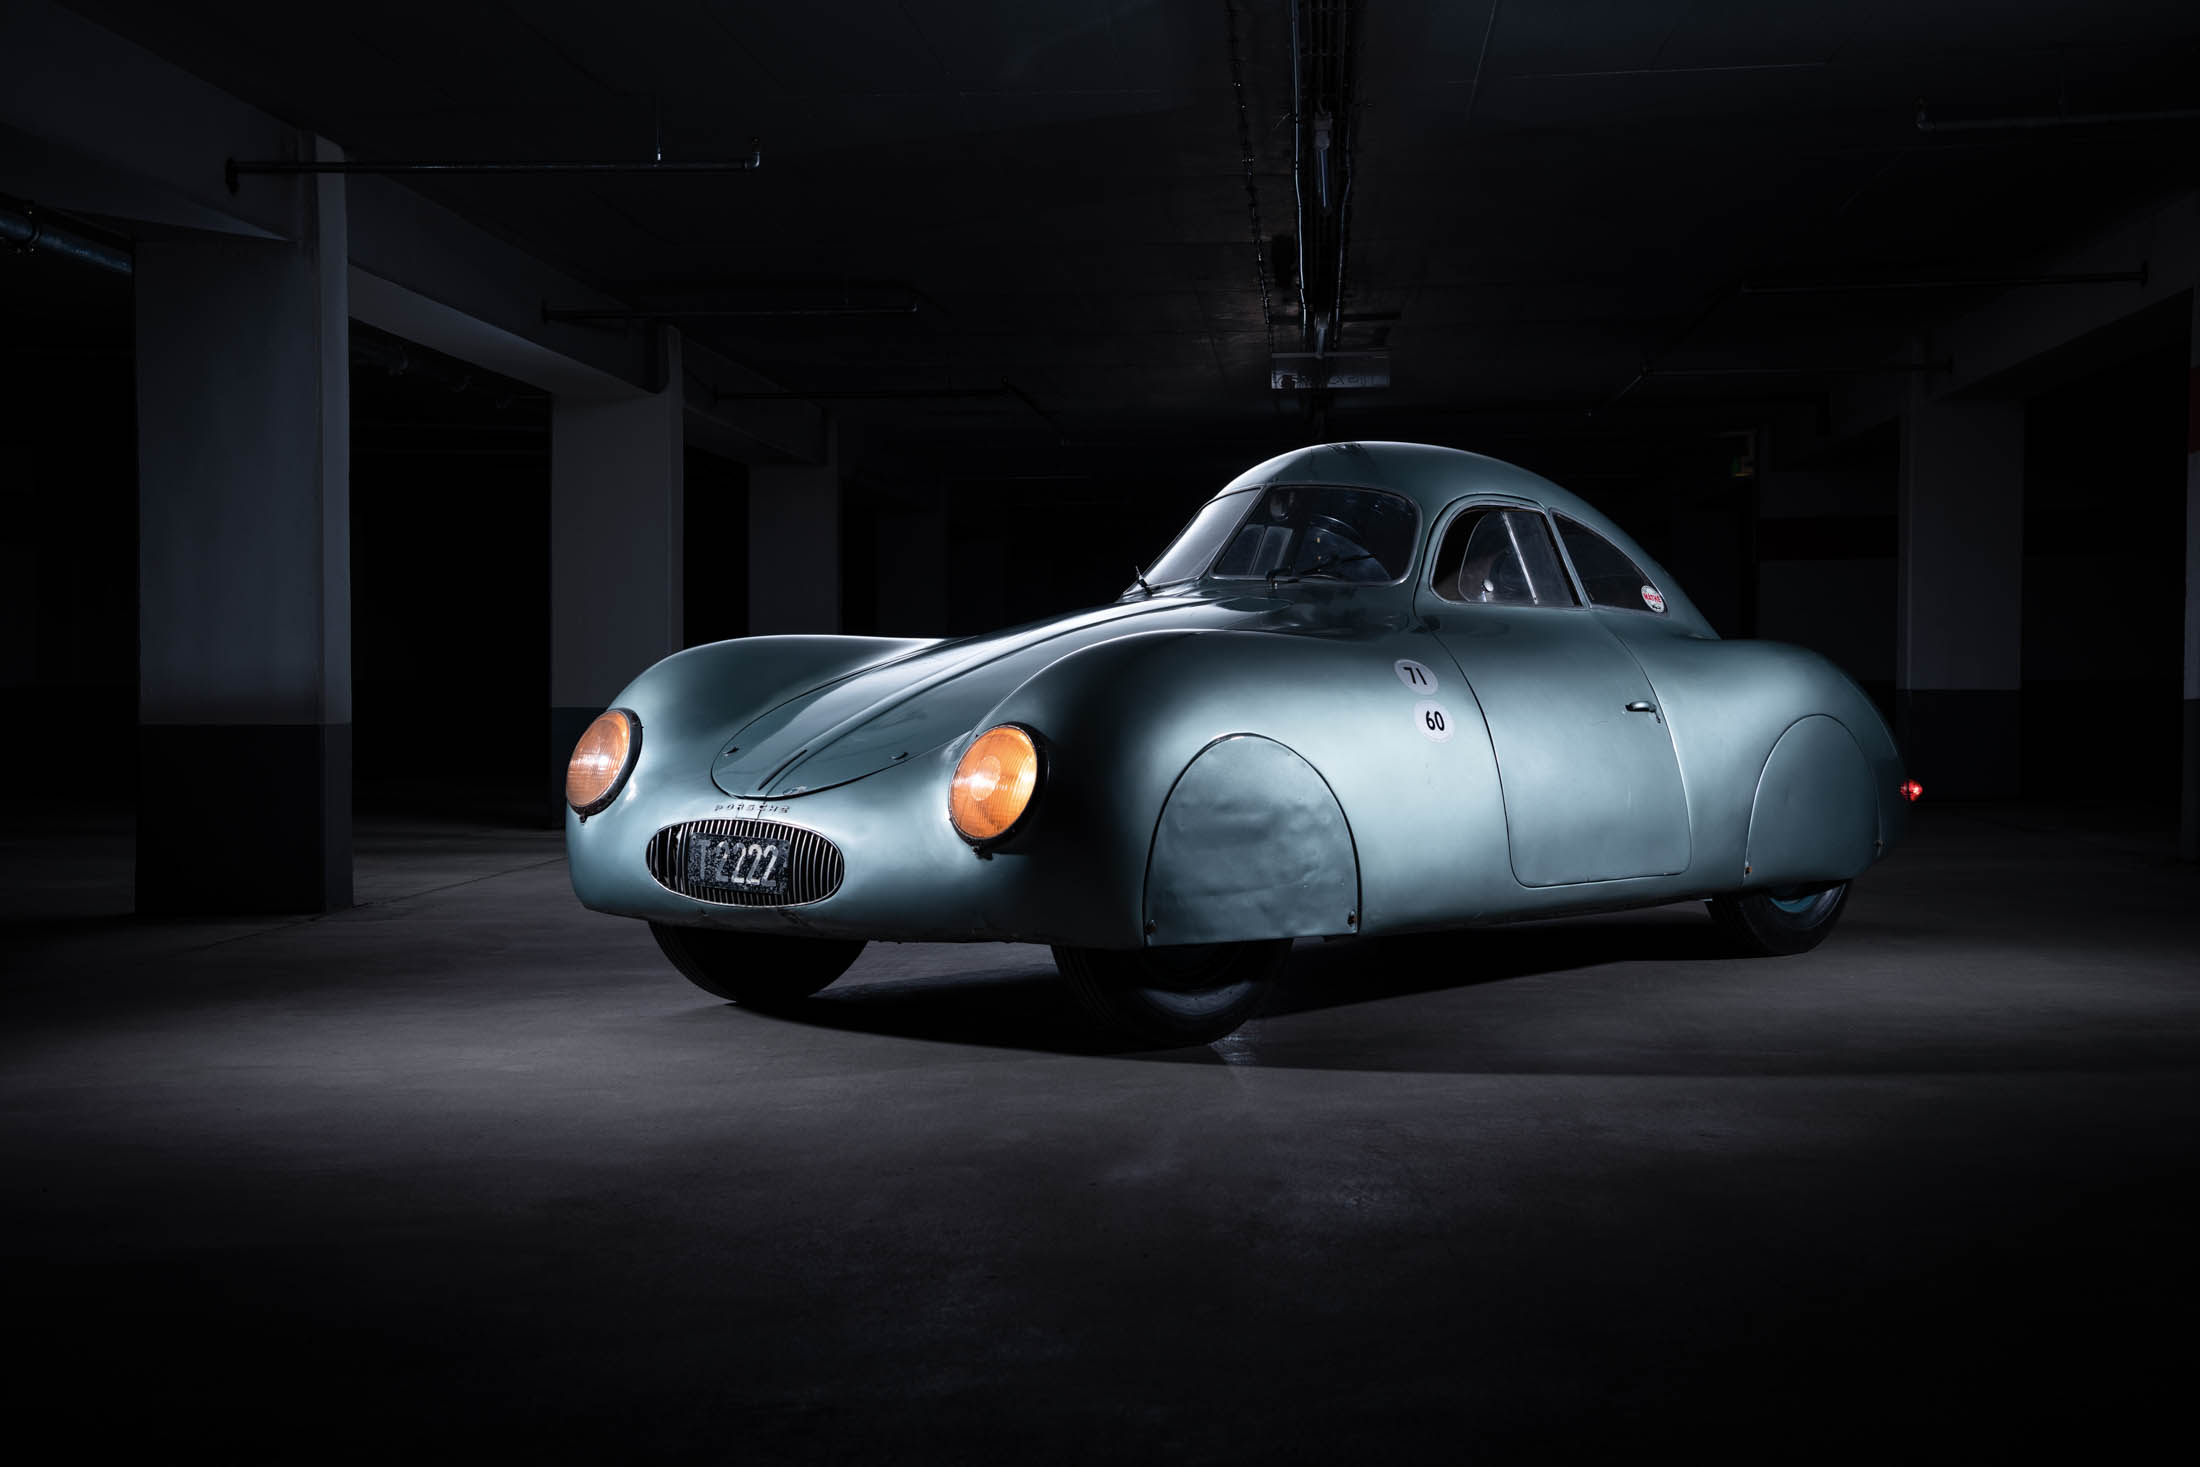 Where Is Porsche Made >> Type 64 Nazi Car By Porsche Fails To Sell Amid Auction